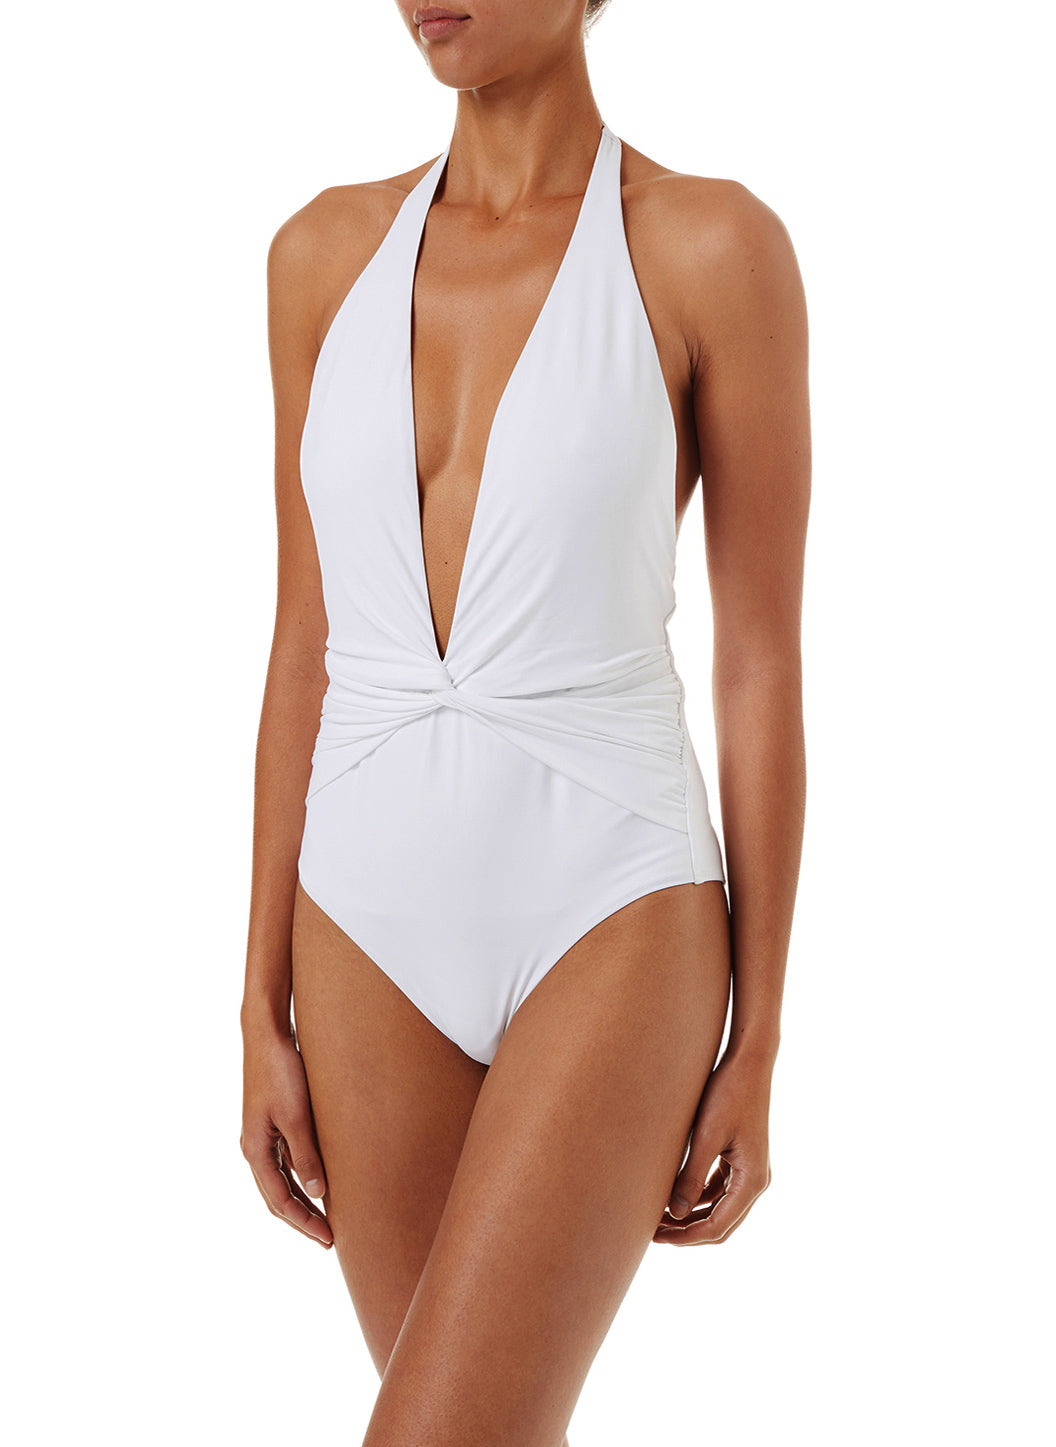 Tahiti White Halterneck Plunge Ruched Swimsuit